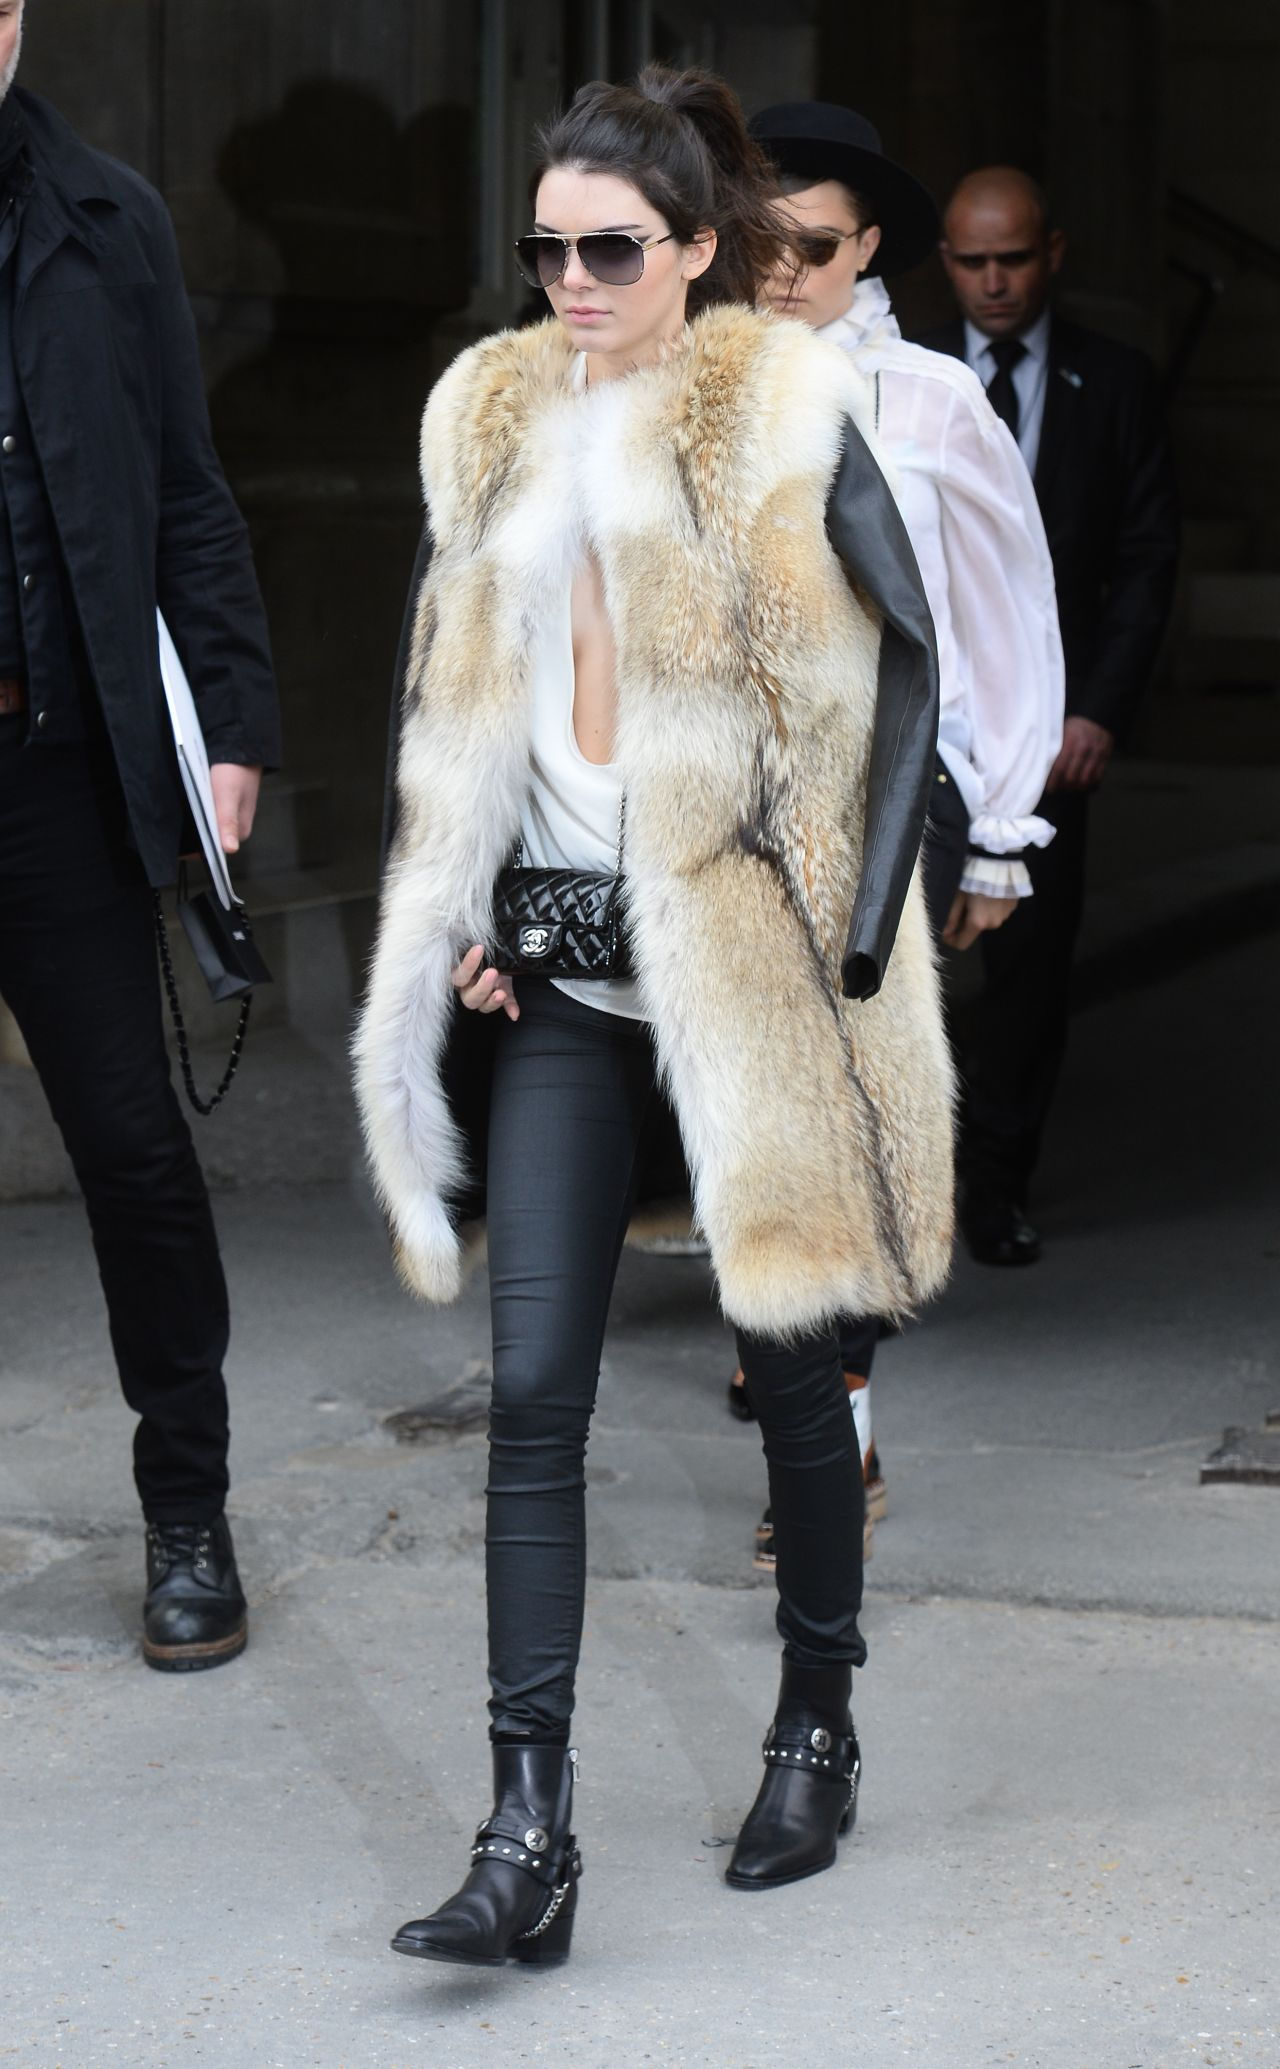 Kendall Jenner – Leaving a Chanel Fashion Show in Paris, March 2015